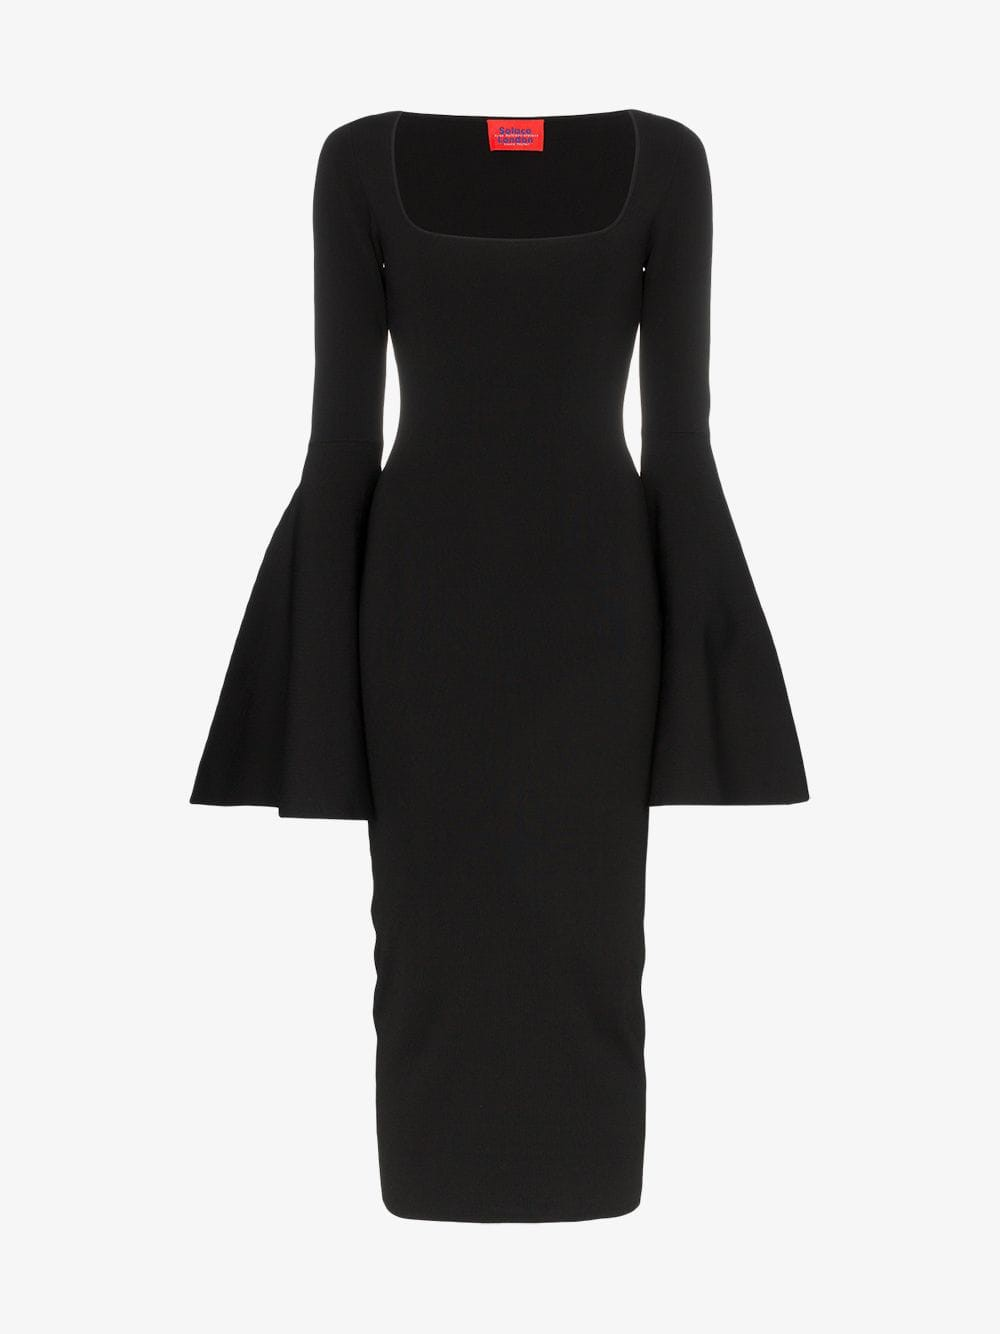 Solace London Serra square neck bell sleeve dress in black